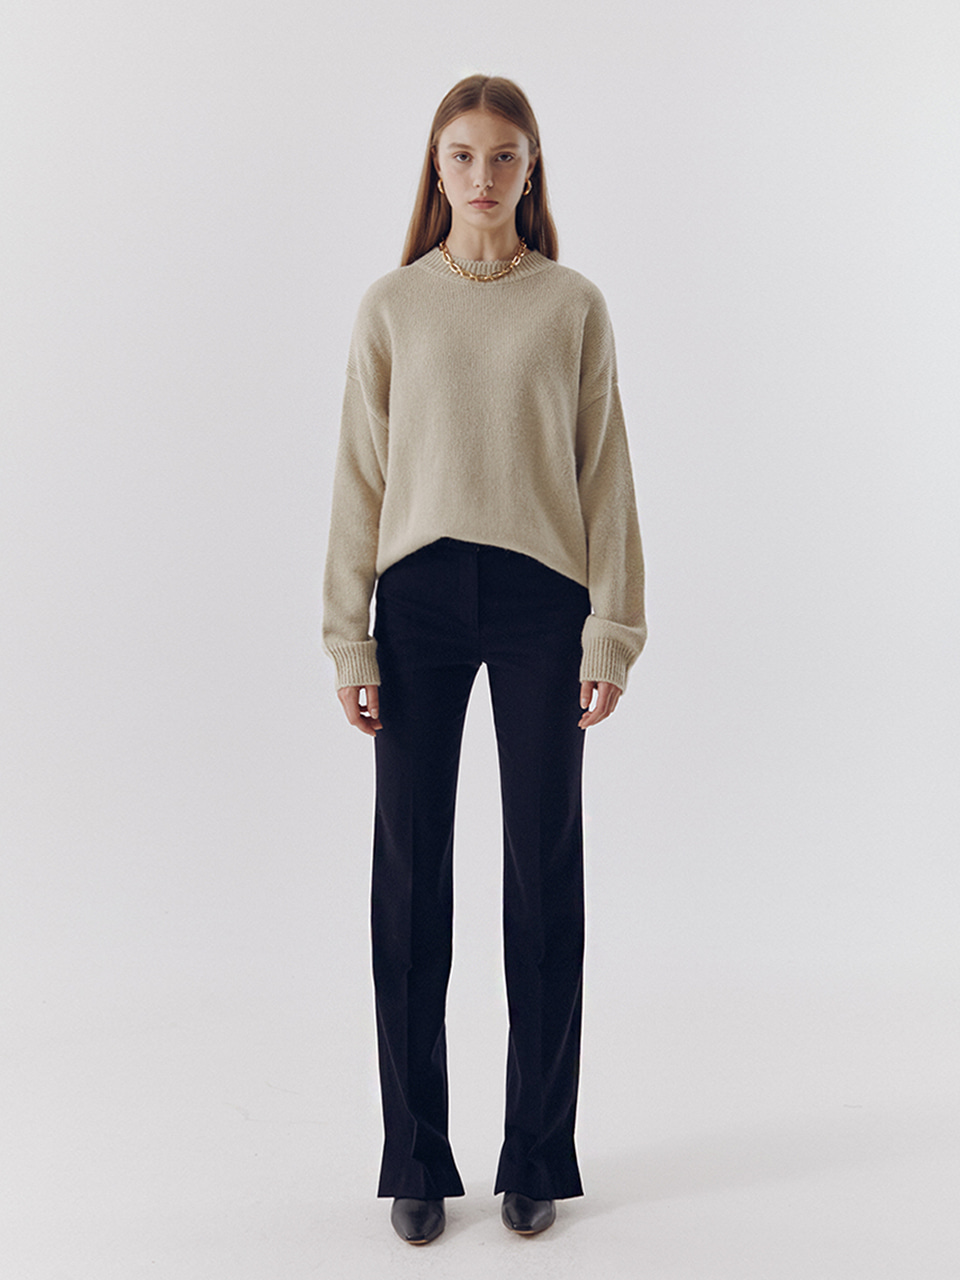 CASHMERE ASYMMETRY SLIM BOOT-CUT TROUSERS NAVY